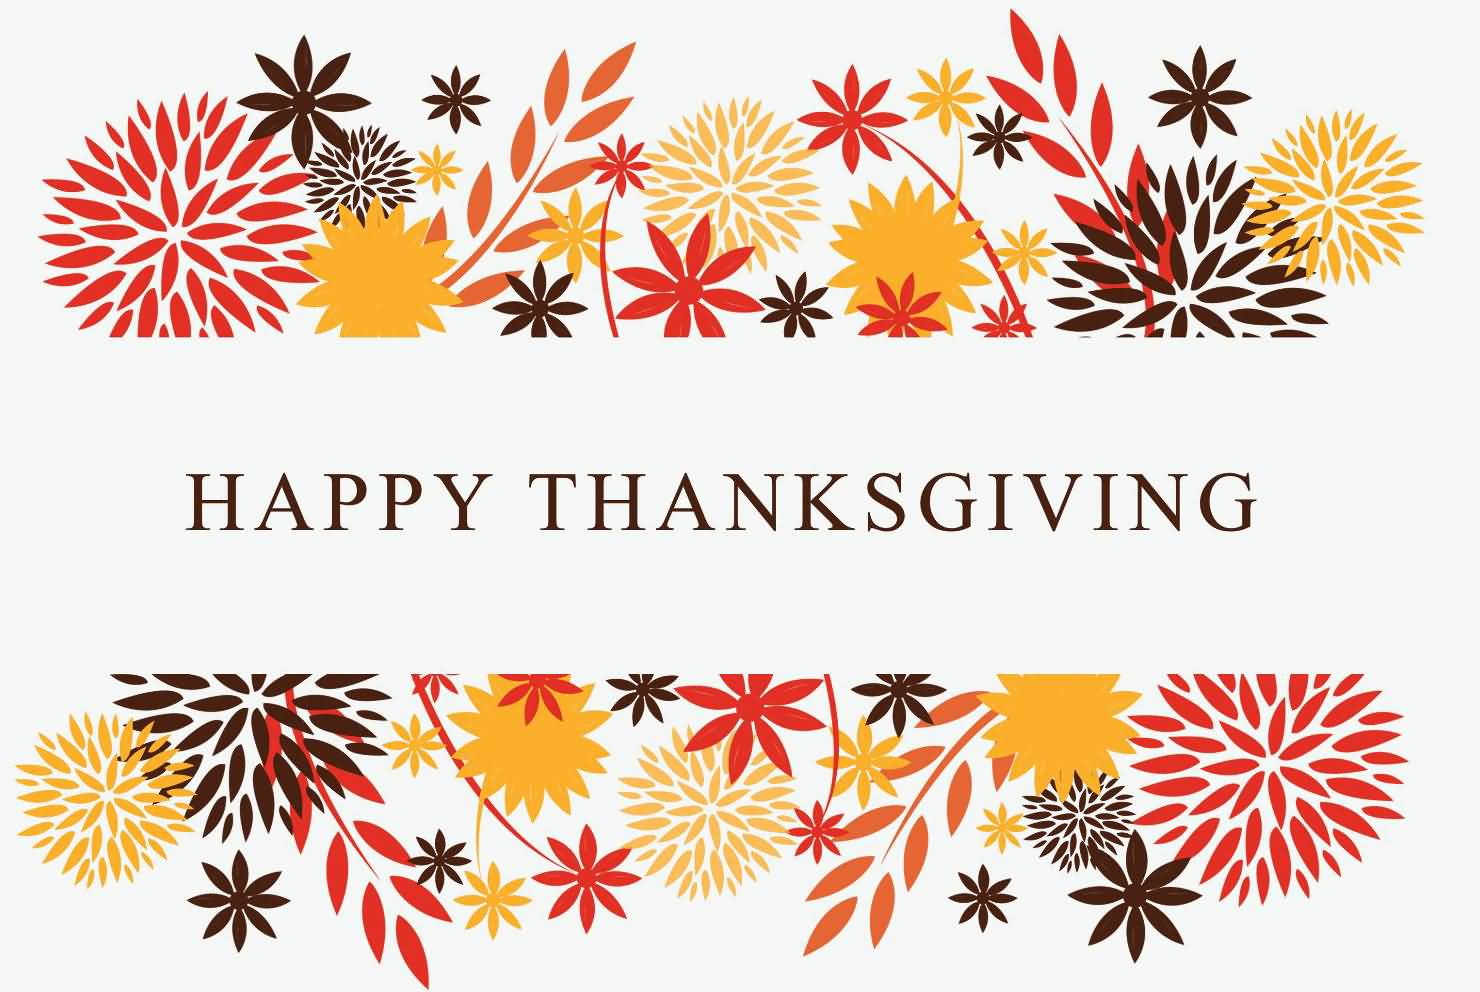 55 latest happy thanksgiving day 2016 greeting pictures and images happy thanksgiving 2016 greeting ecard kristyandbryce Choice Image